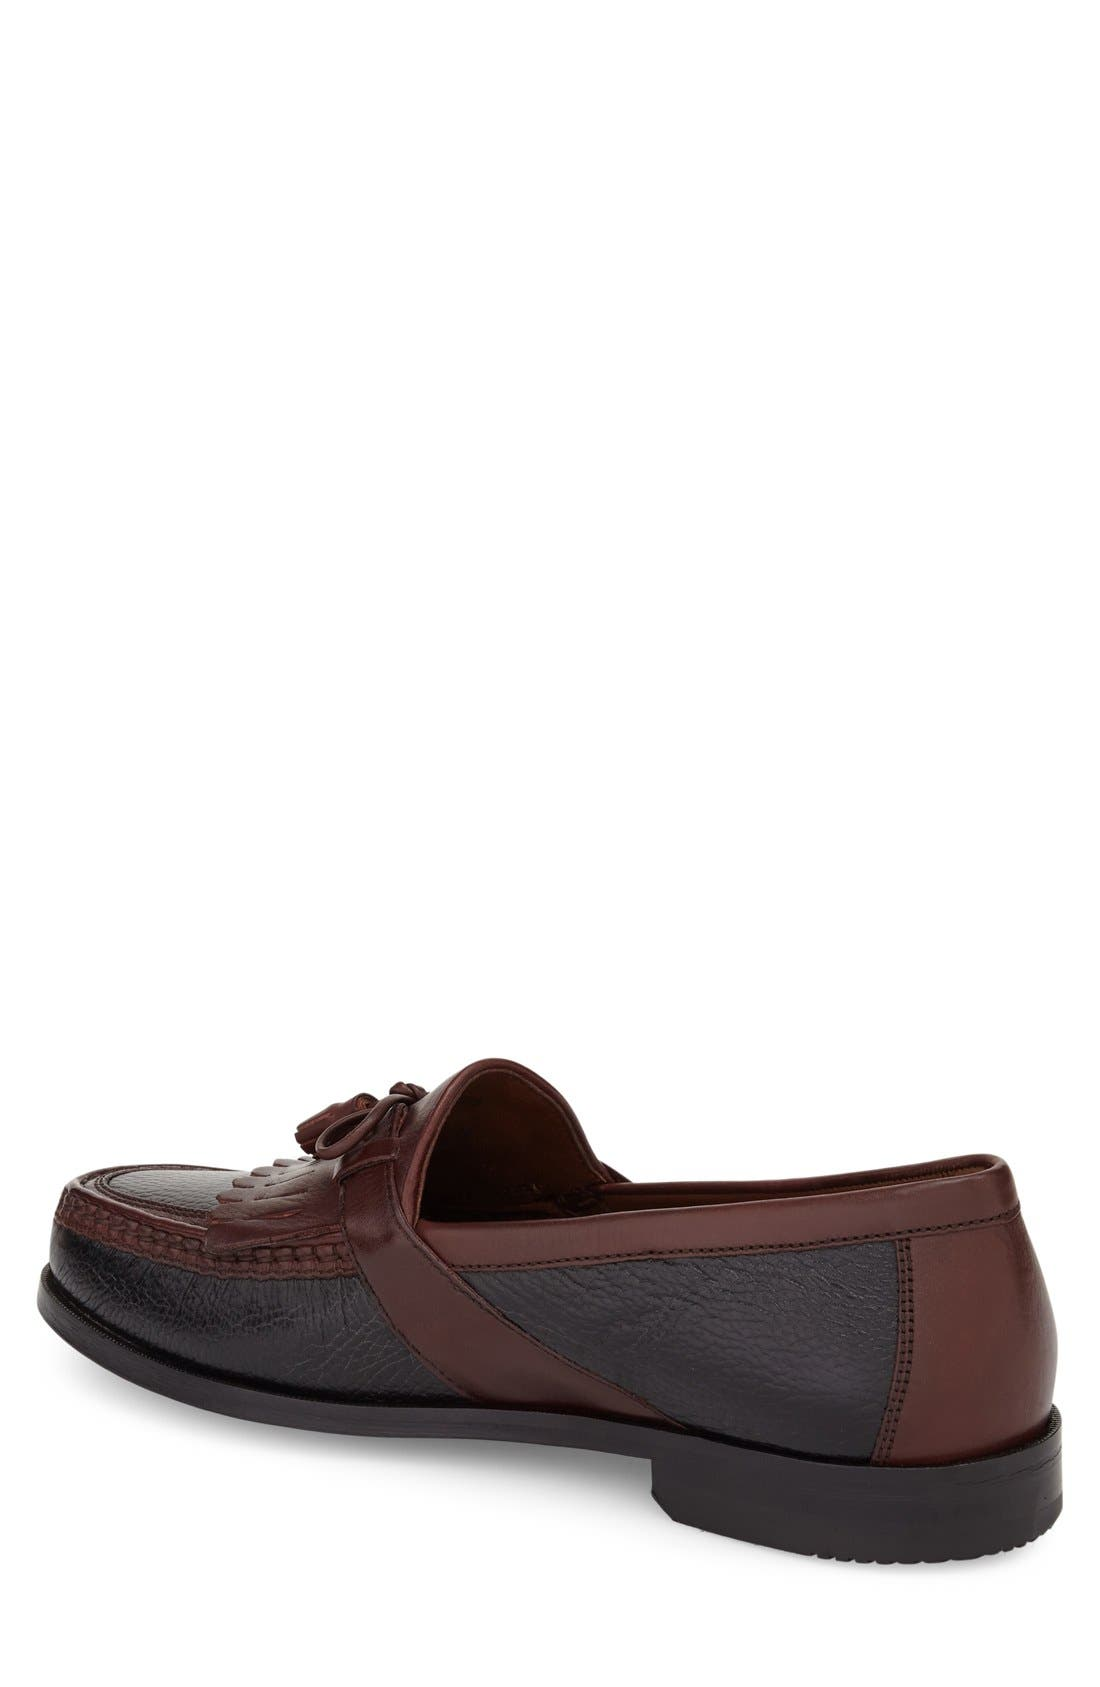 'Aragon II' Loafer,                             Alternate thumbnail 2, color,                             BLACK/ BROWN LEATHER